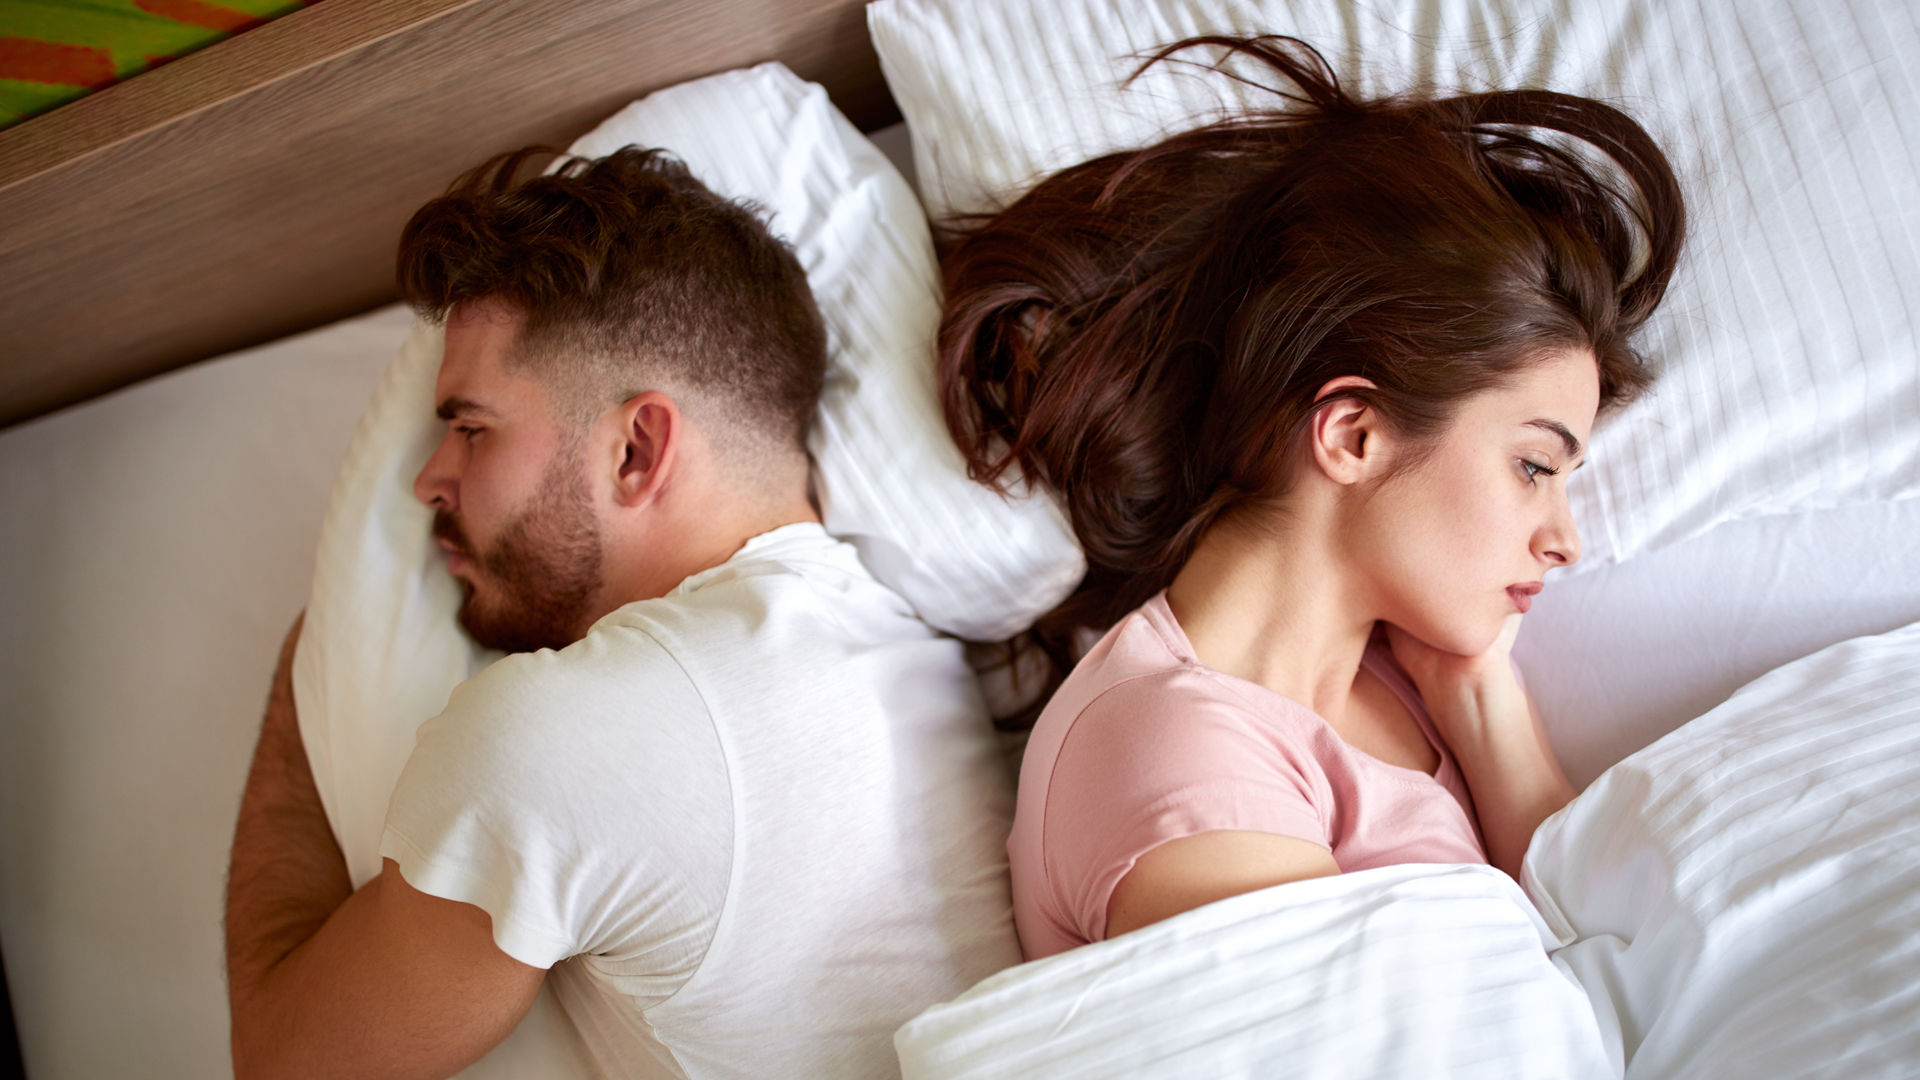 No sex after date night for unhappy couple